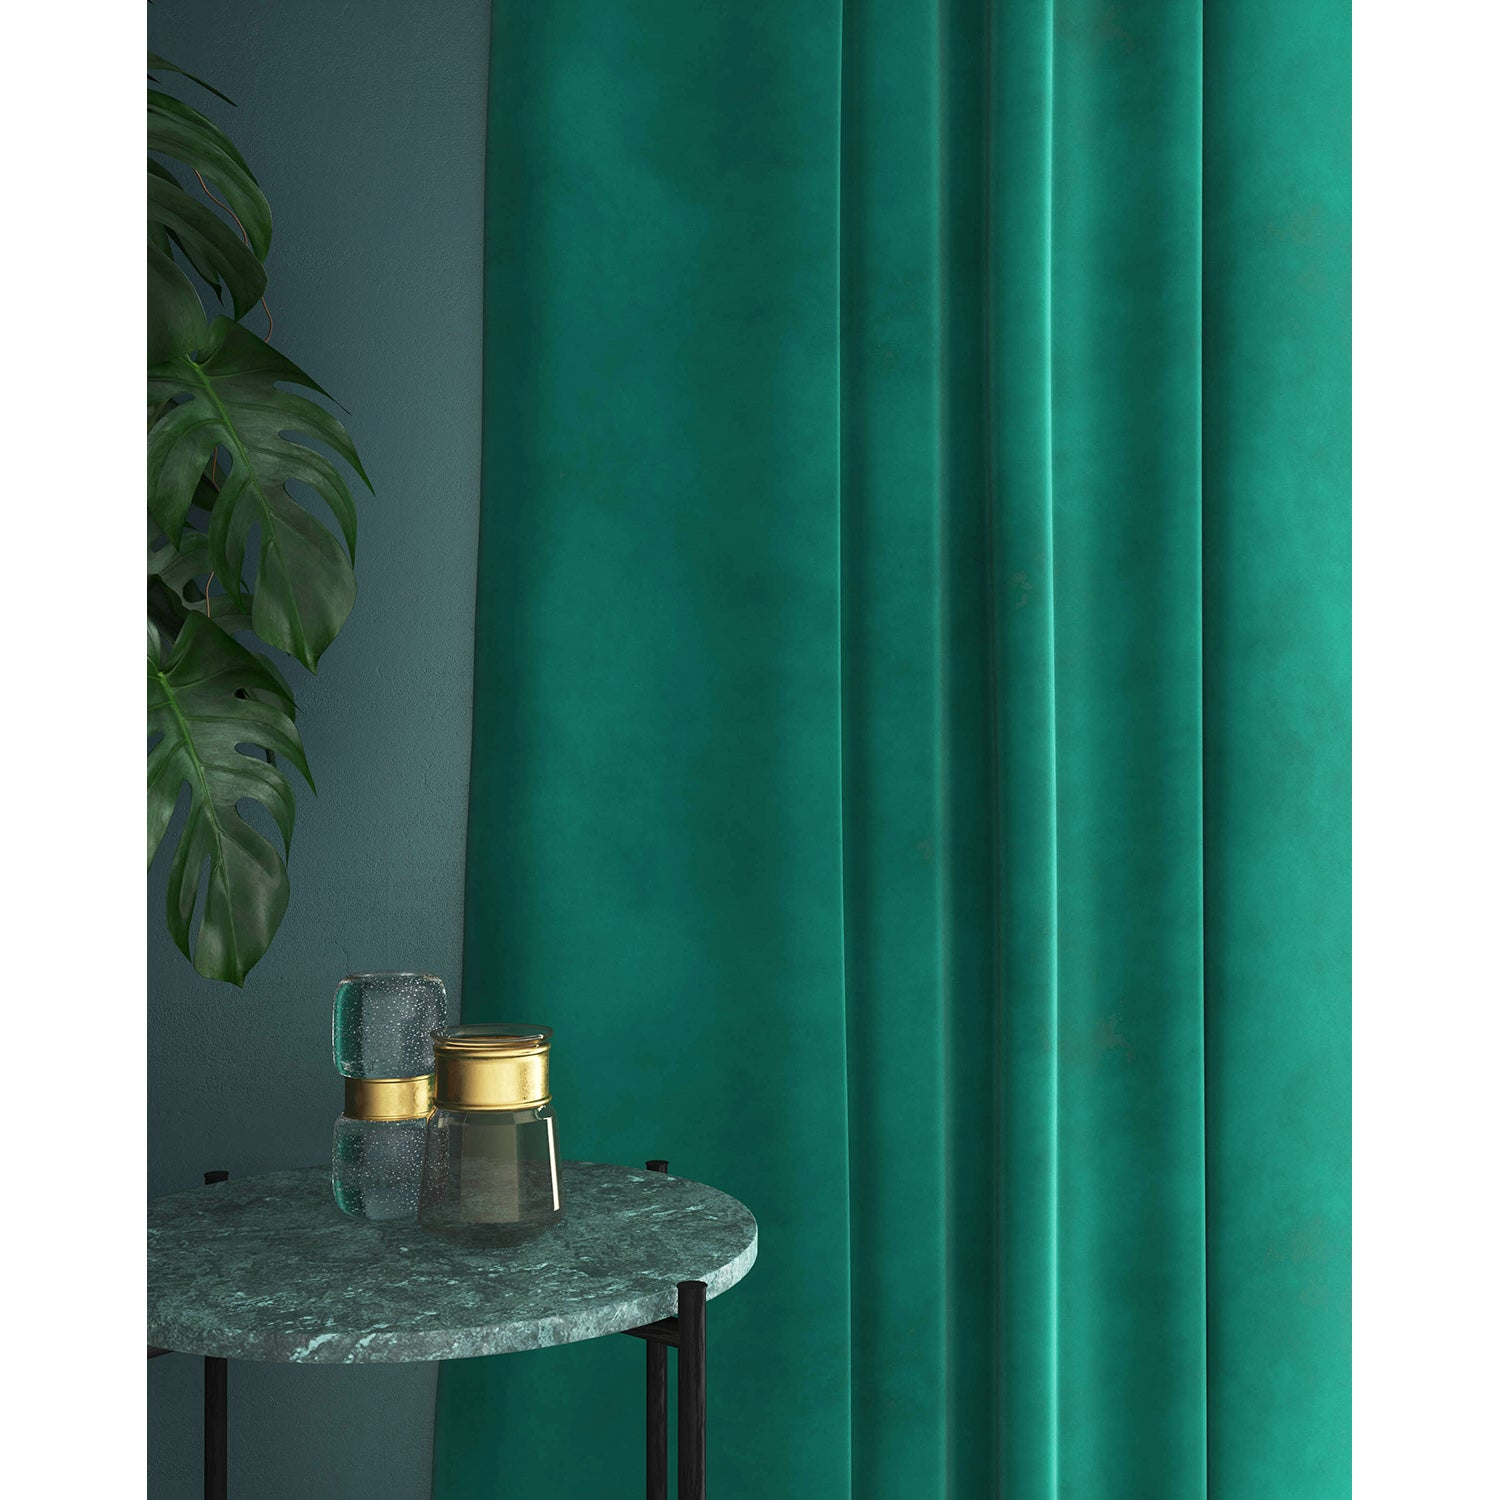 Curtain in a turquoise velvet fabric with a stain resistant finish